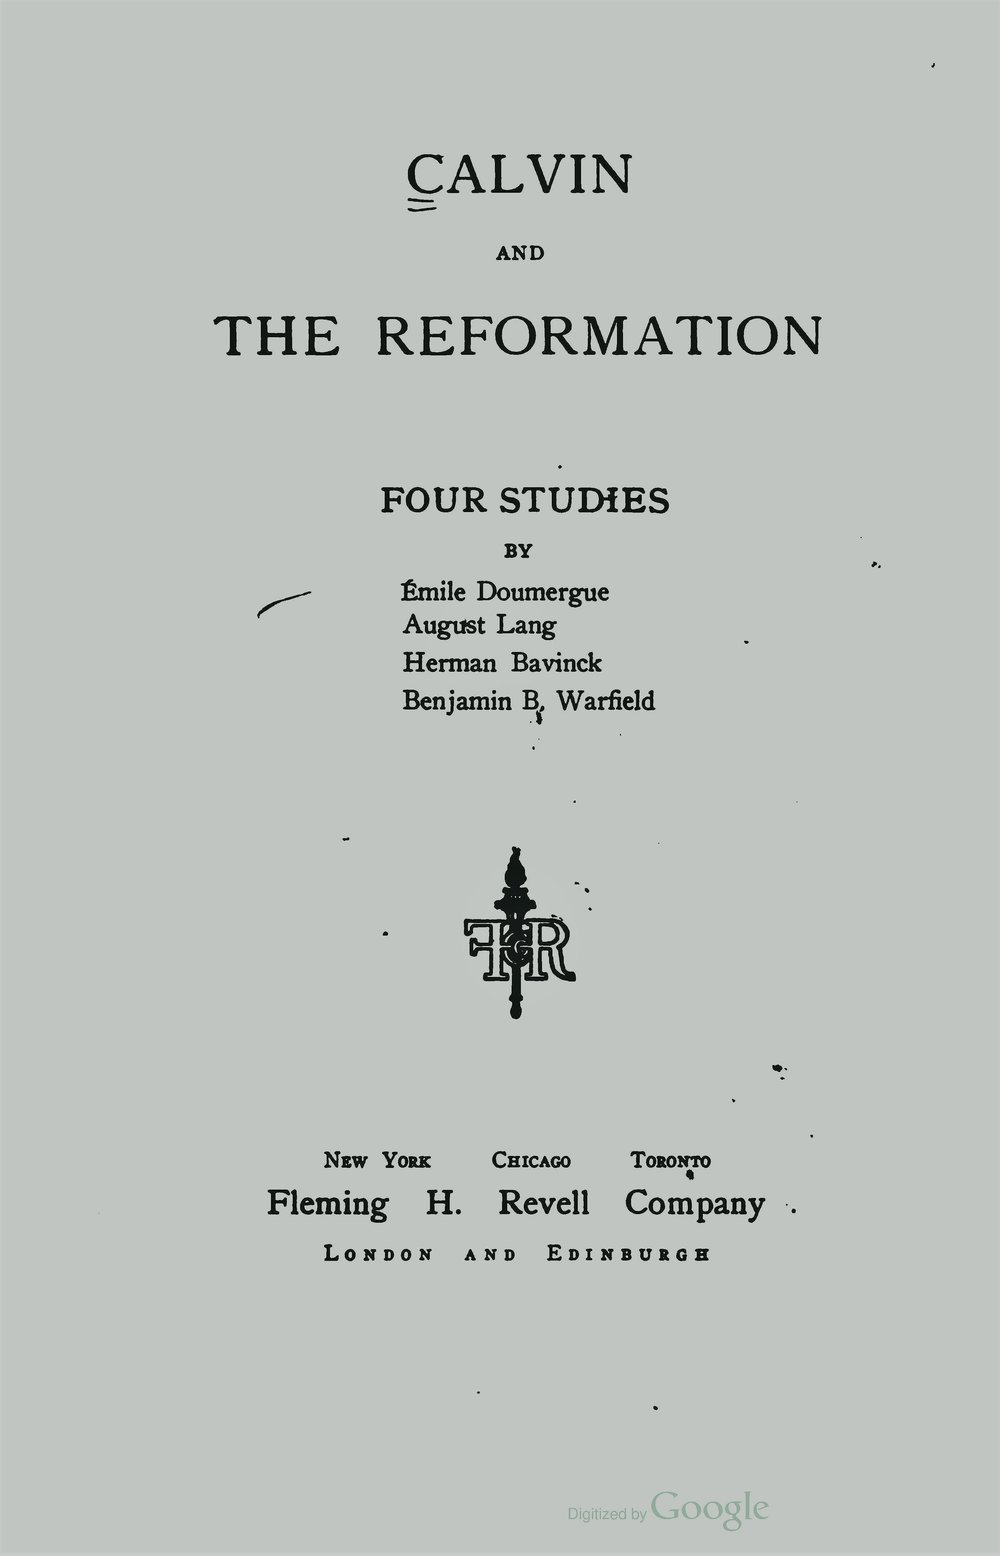 Warfield, Benjamin Breckinridge, Calvin and the Reformation Title Page.jpg